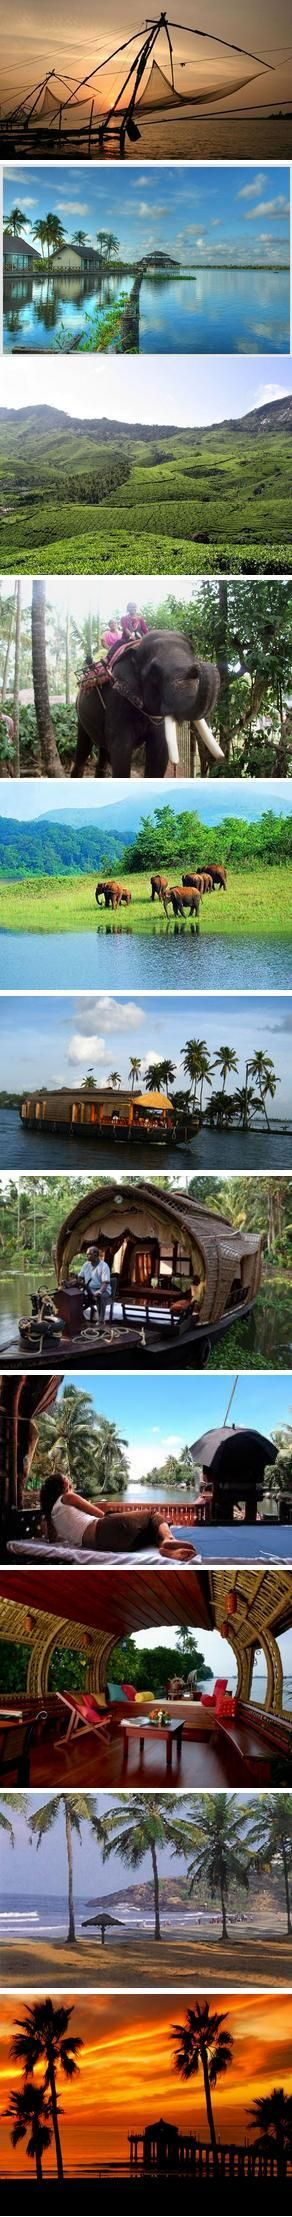 Scenic Kerala Tour – South India Tours @ Travel Agents in Delhi http://toursfromdelhi.com/9-days-scenic-kerala-tour